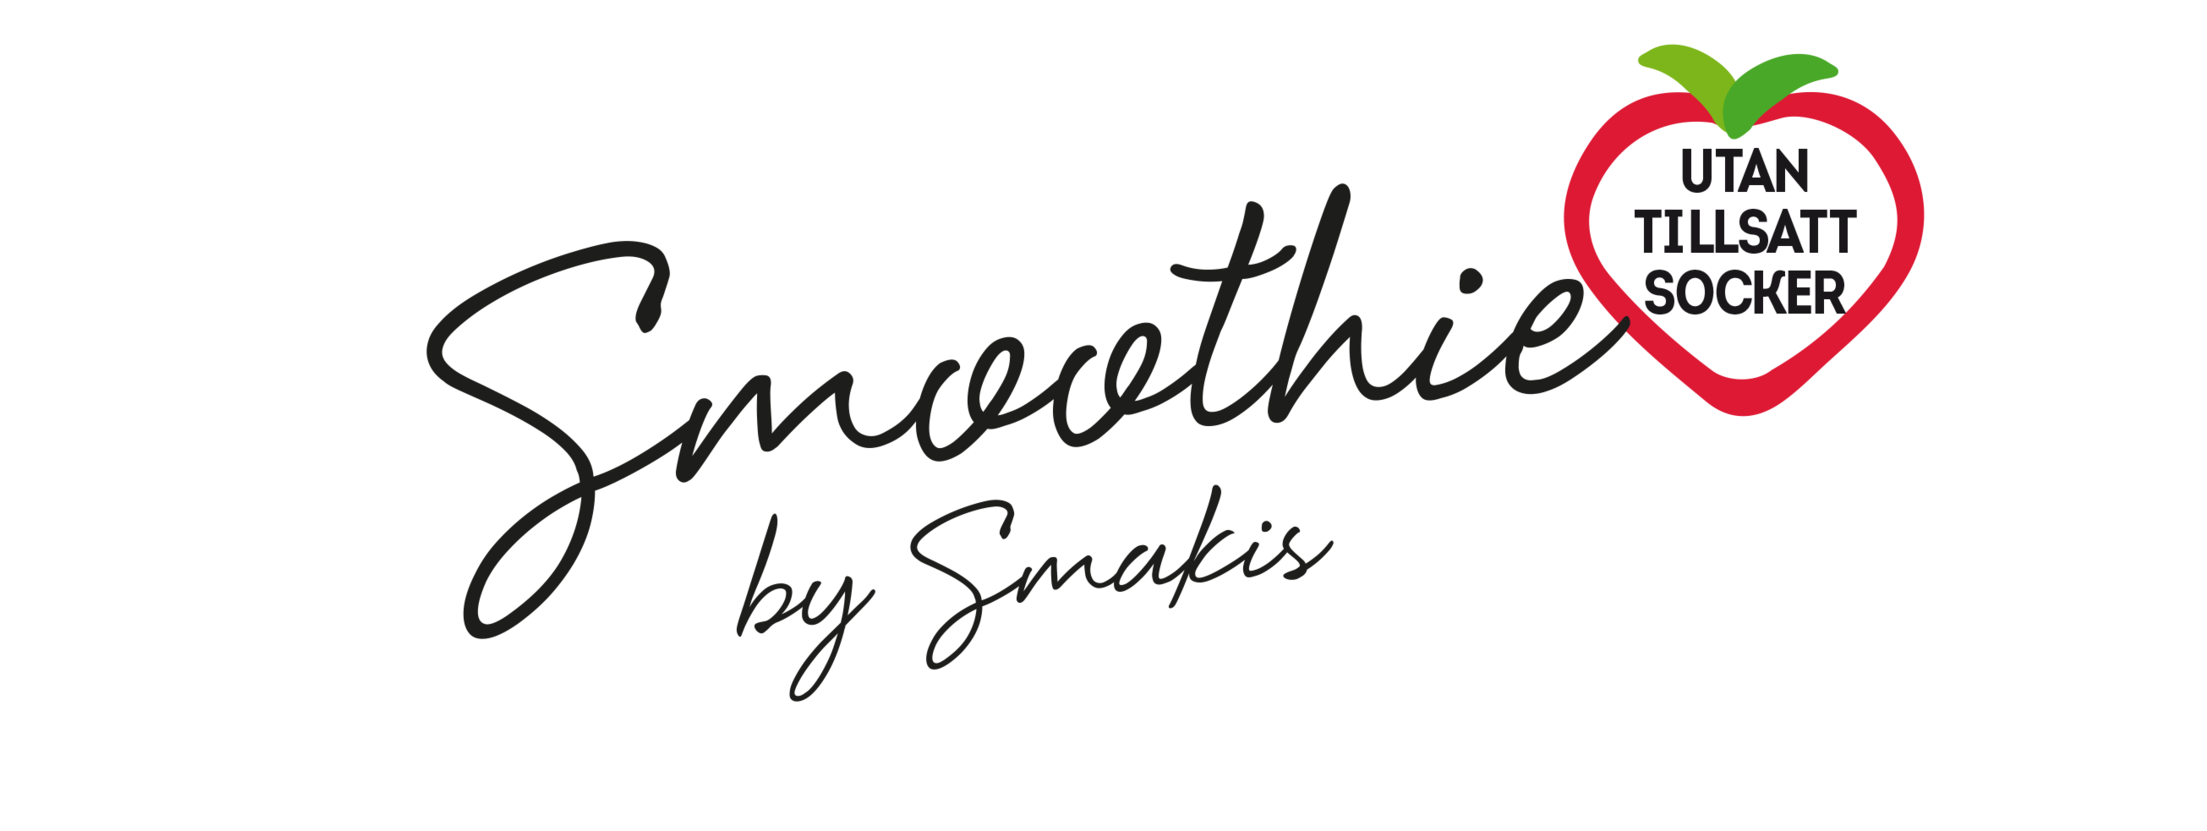 Smakis_smoothie3.png